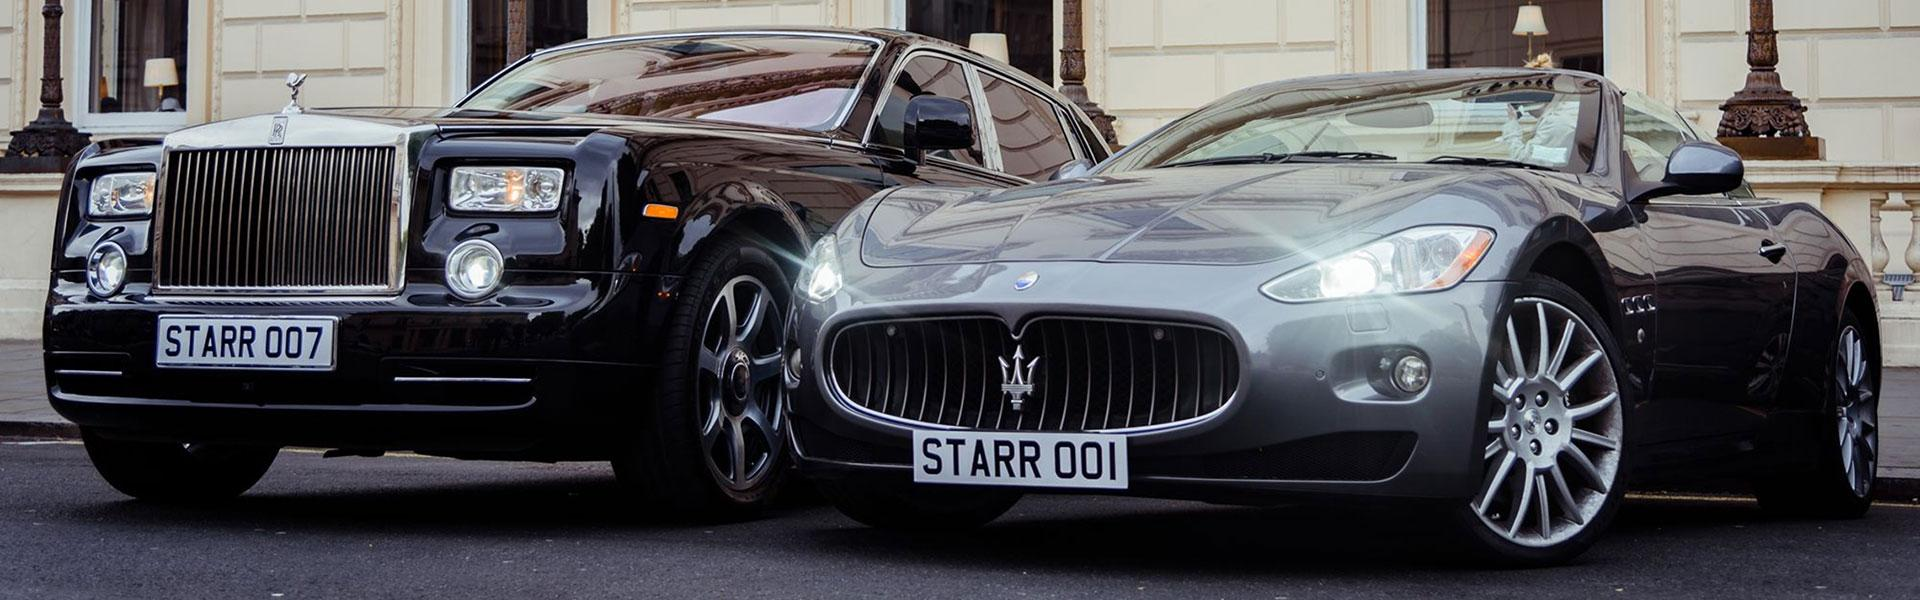 Starr Luxury Car Hire From A To B In Ultimate Style Motoring